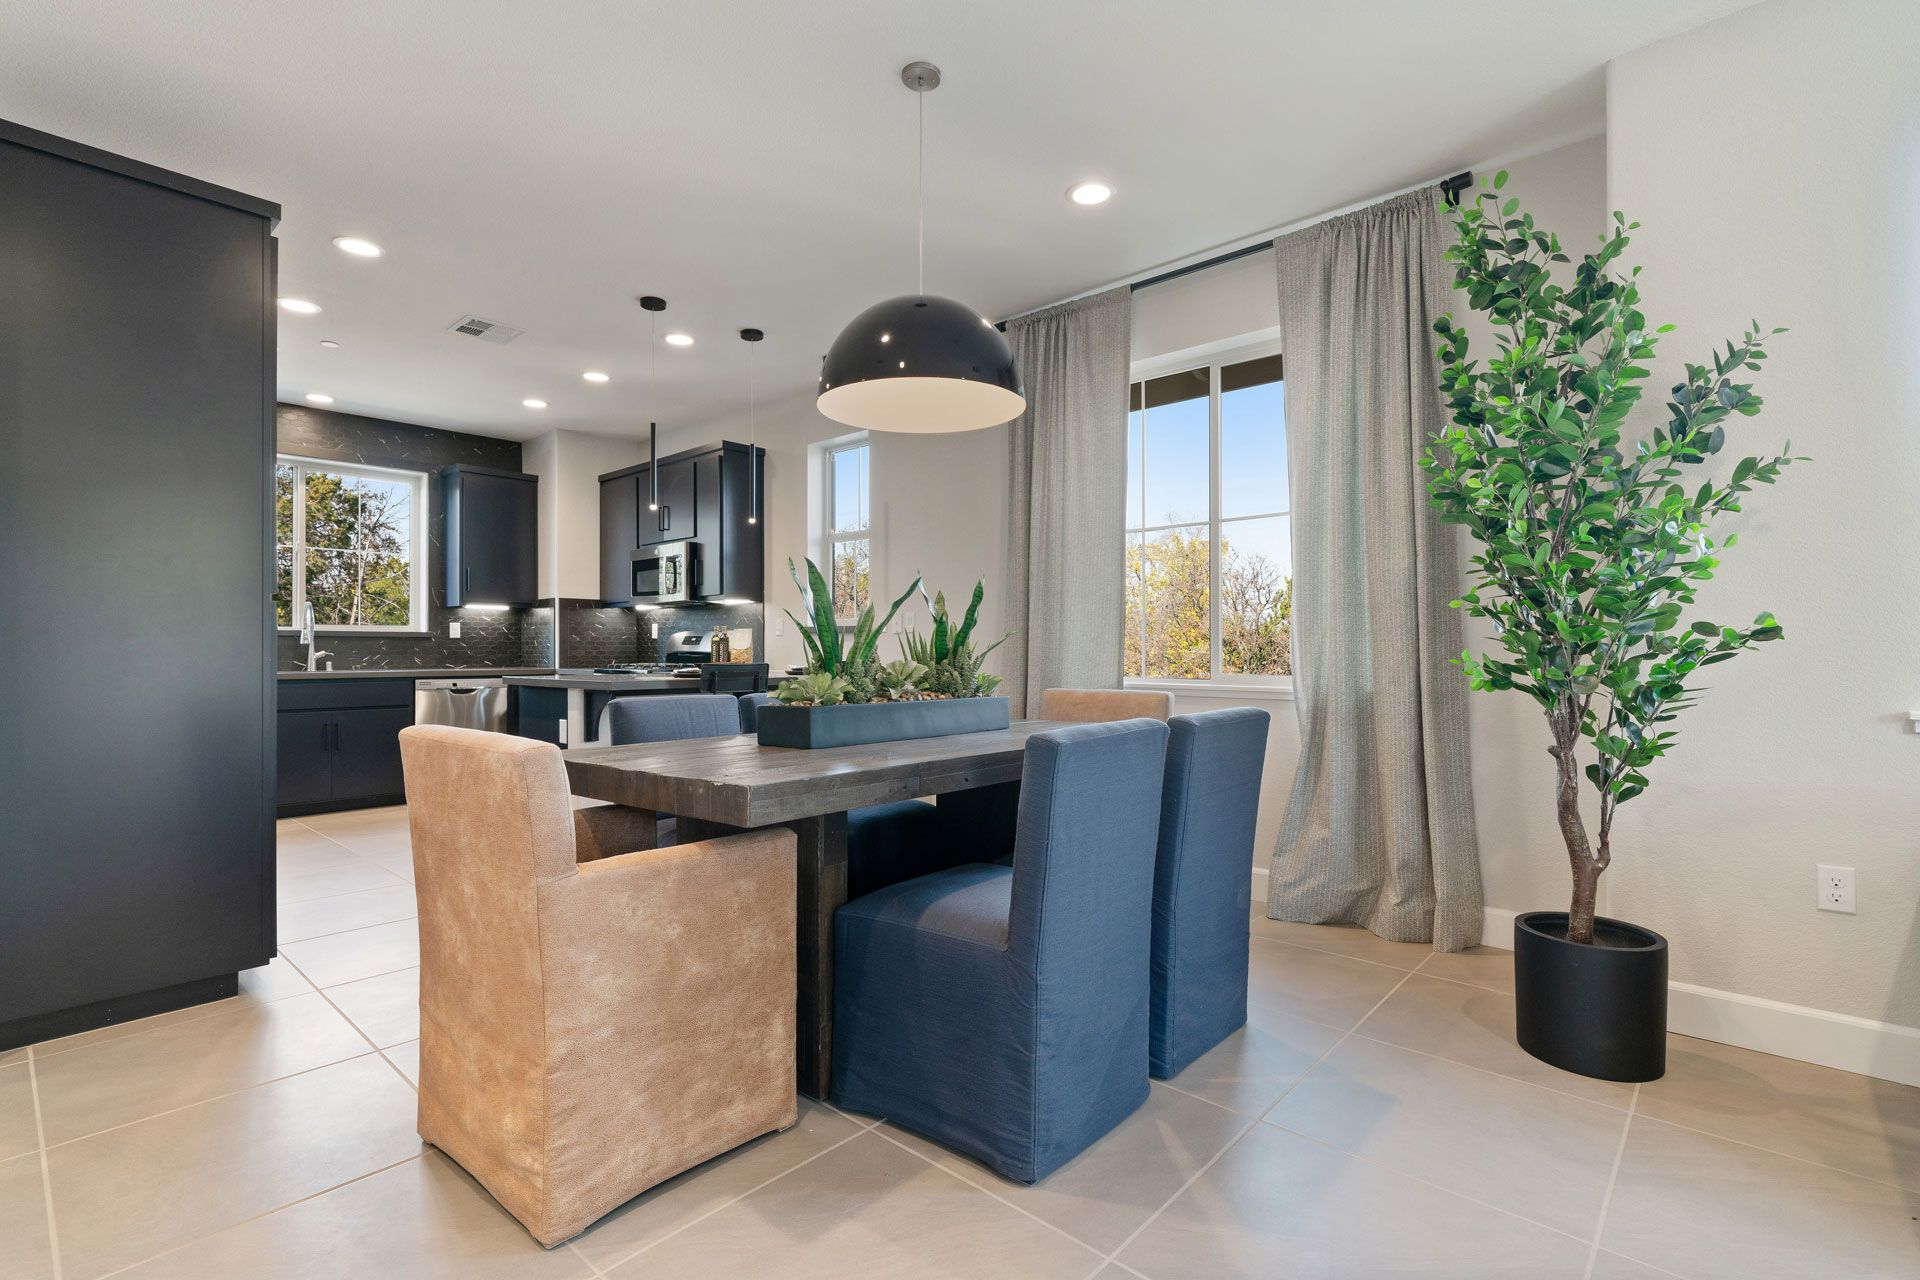 Kitchen featured in the Birch By Discovery Homes in Oakland-Alameda, CA